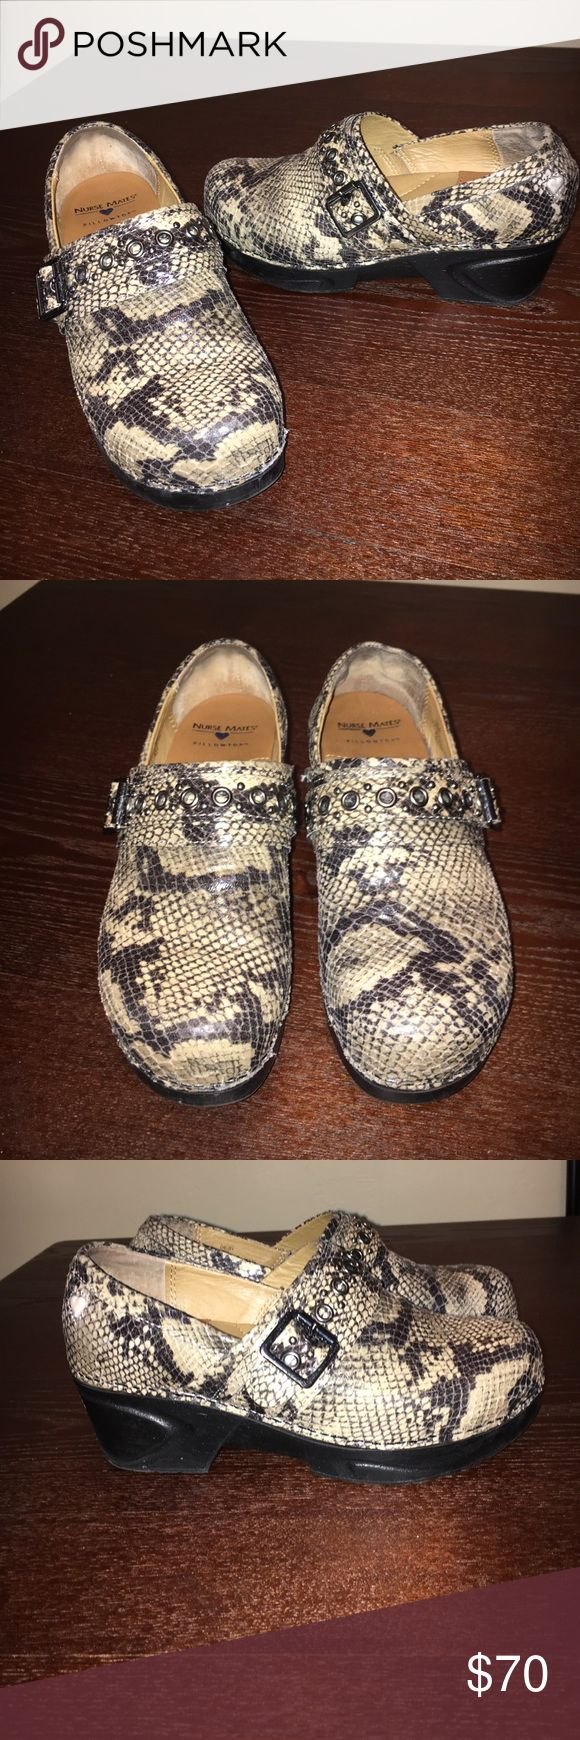 Nurse MatesPillowTop Shoes Be Stylish While you Work! Very Lightly Worn Nurse Mates Pillow Top Shoes Nurse Mates Shoes Mules & Clogs